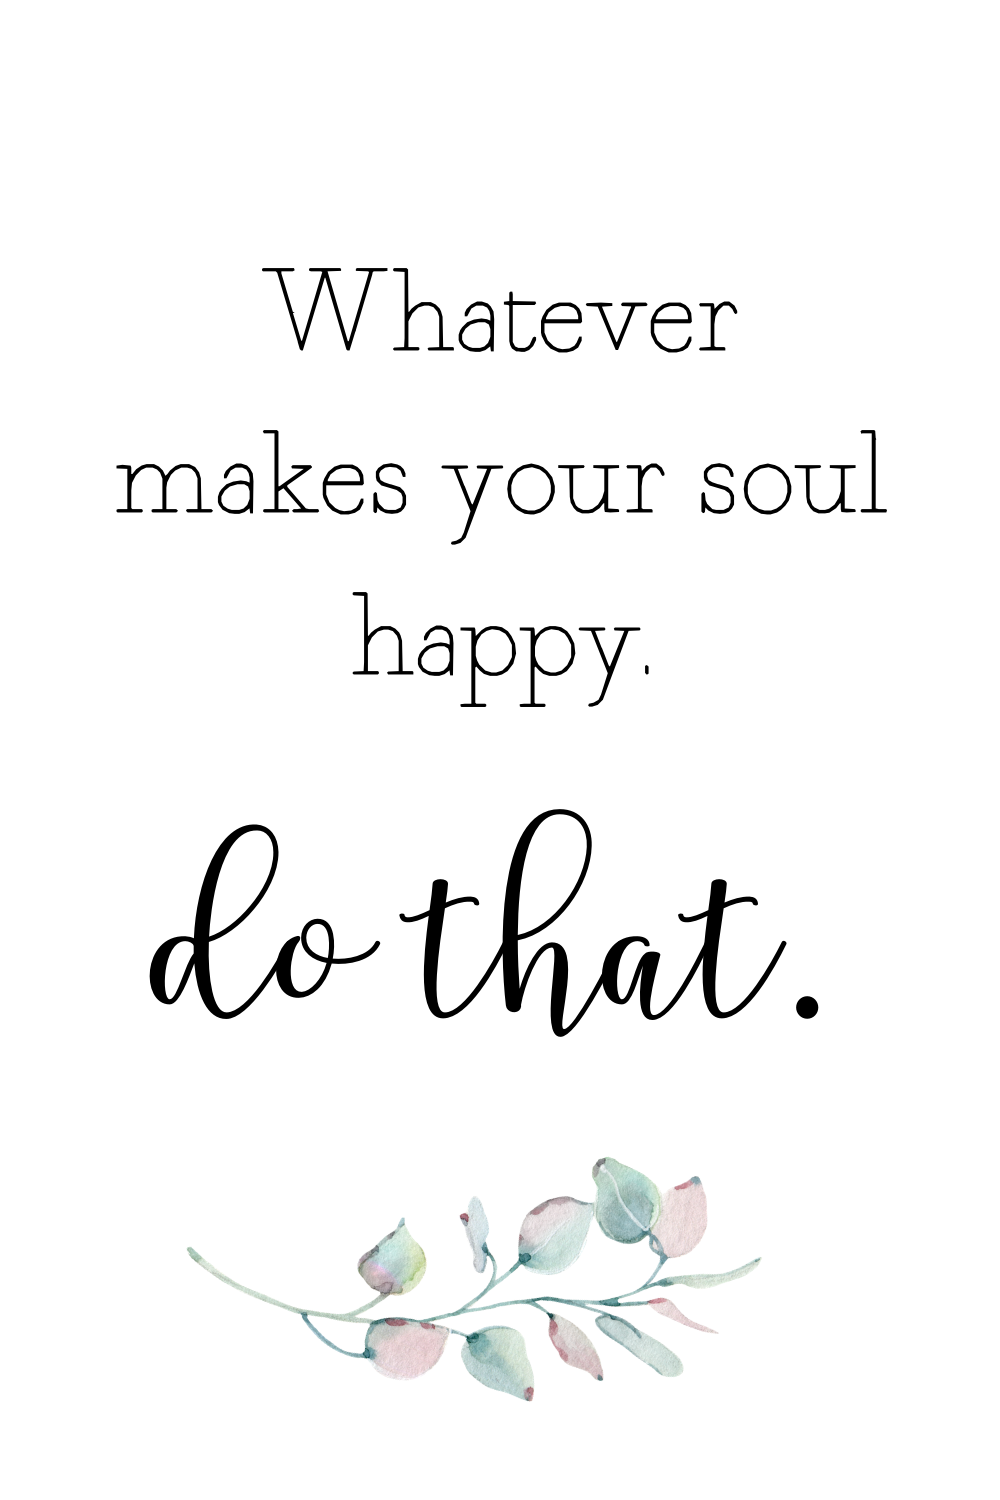 15 Cute Happy Quotes About Life Plus Free Printable Happy Quotes List In 2020 Cute Happy Quotes Happy Life Quotes Happy Quotes Positive